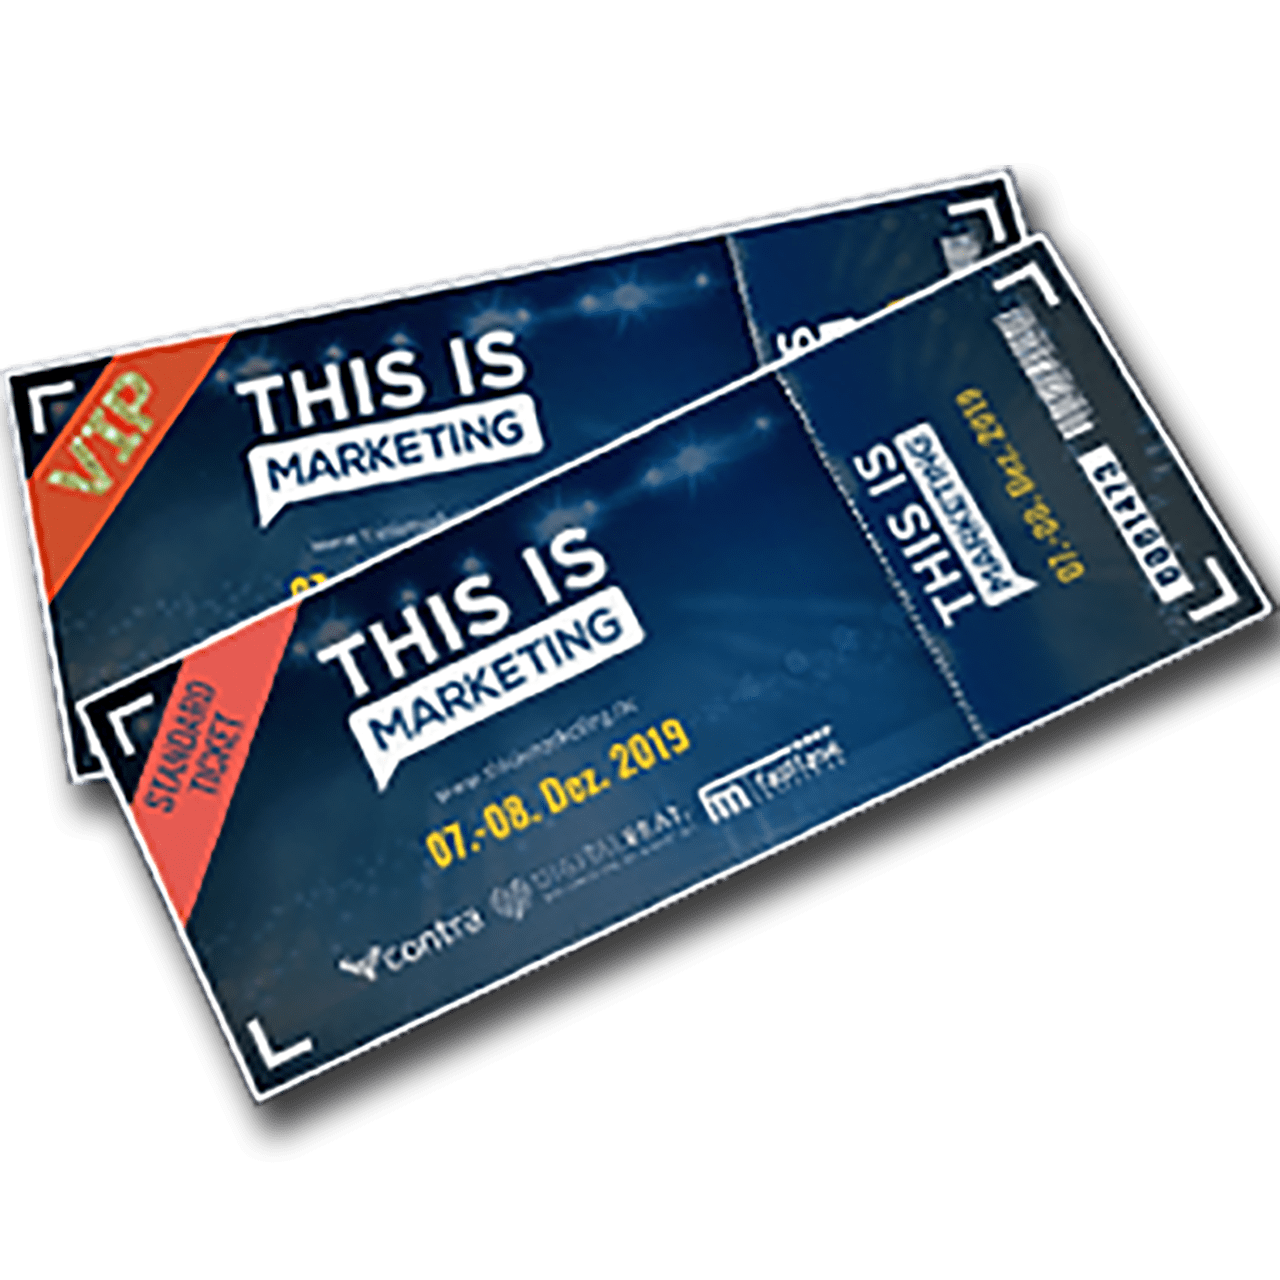 This is Marketing Event 2019 in Stuttgart